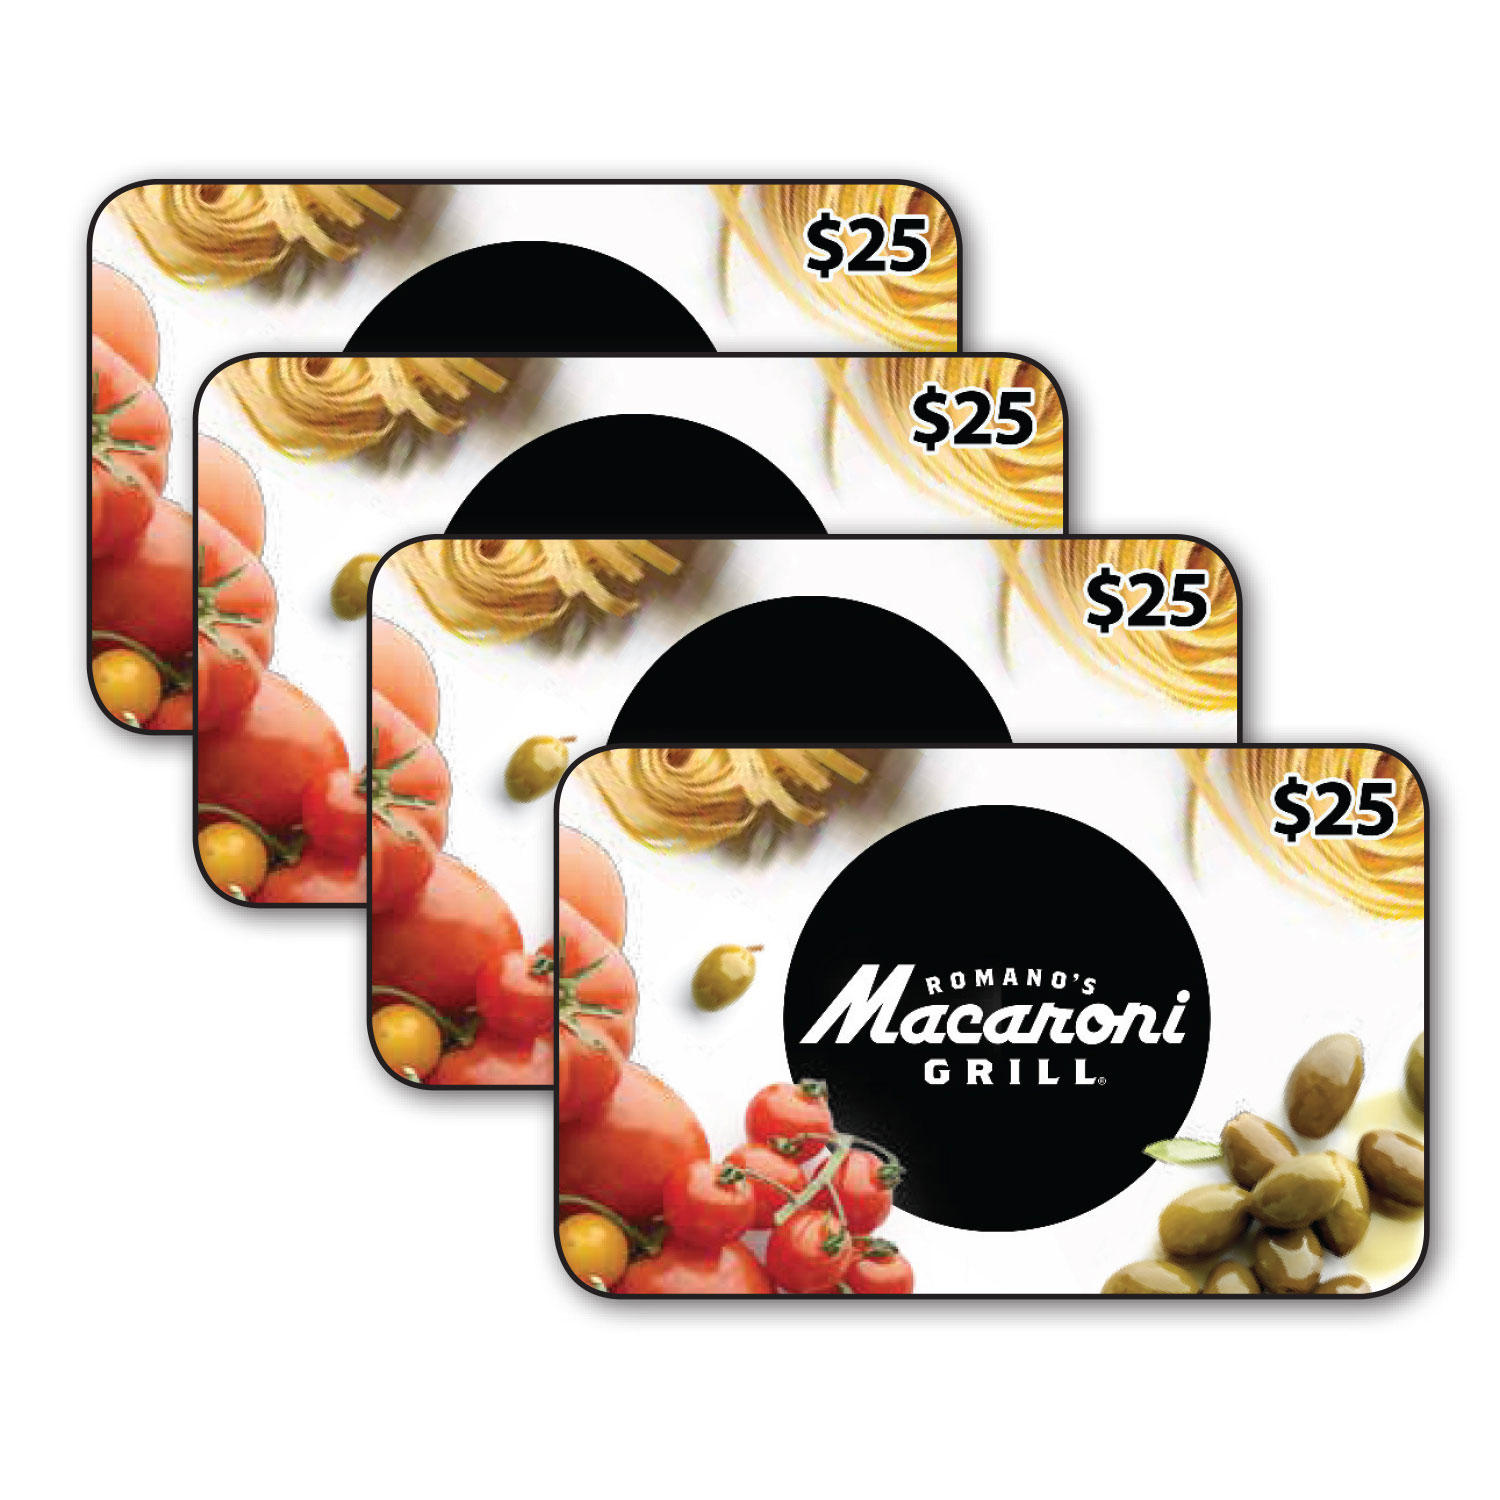 $100 (4 x $25) Romano's Macaroni Grill Gift Cards